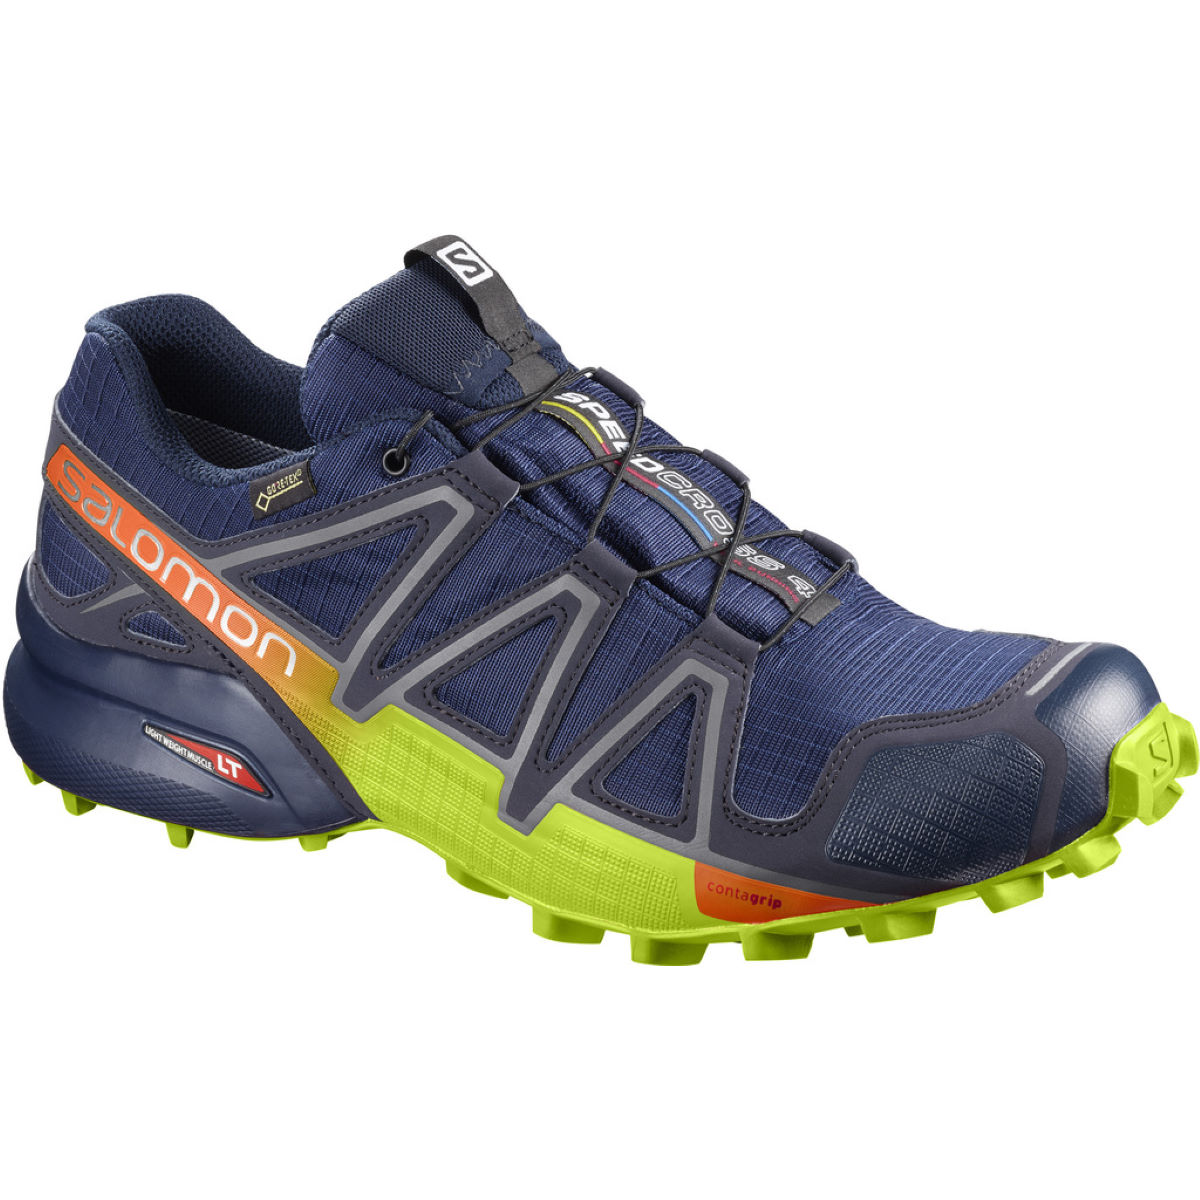 Zapatillas Salomon Speedcross 4 GTX (OI16) - Zapatillas de trail